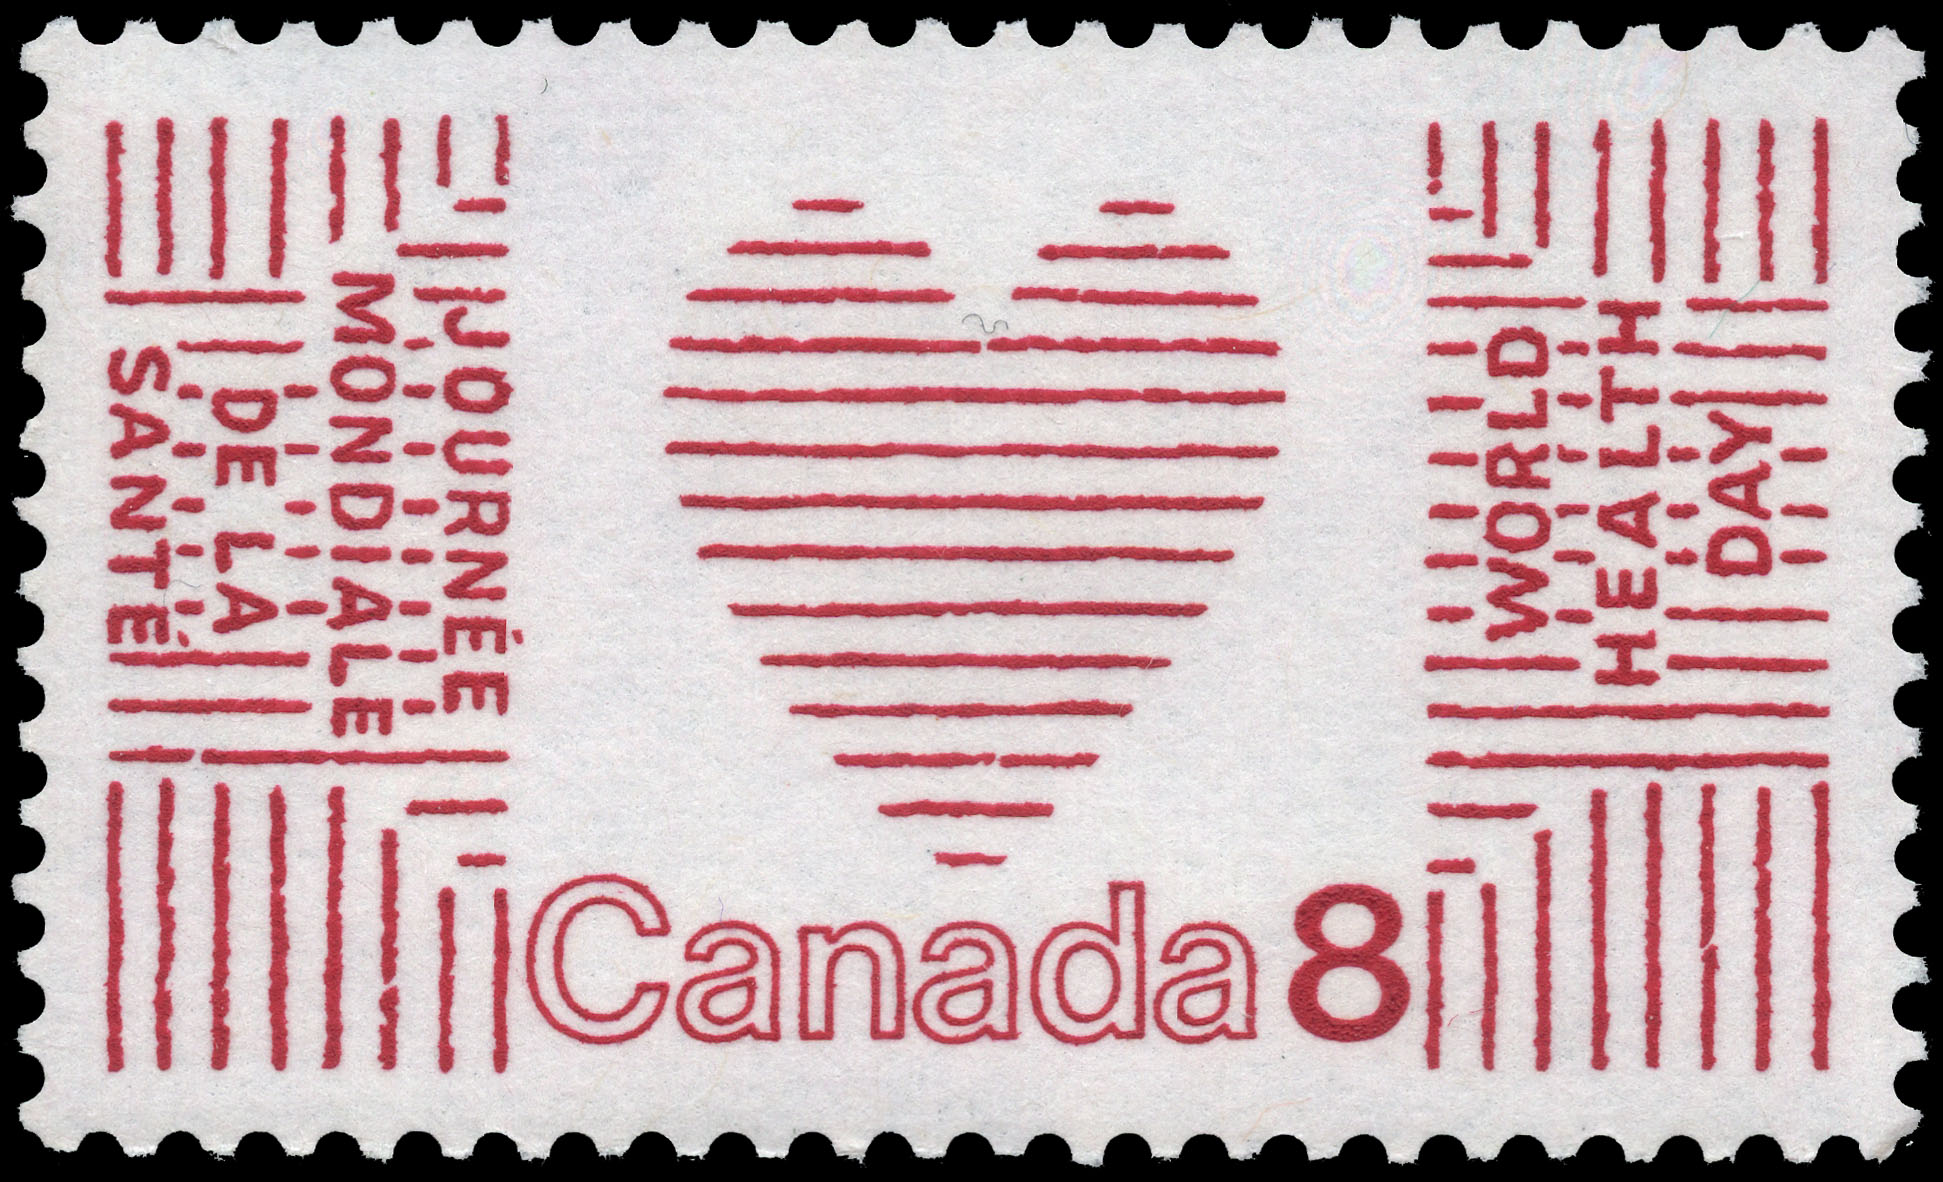 World Health Day Canada Postage Stamp